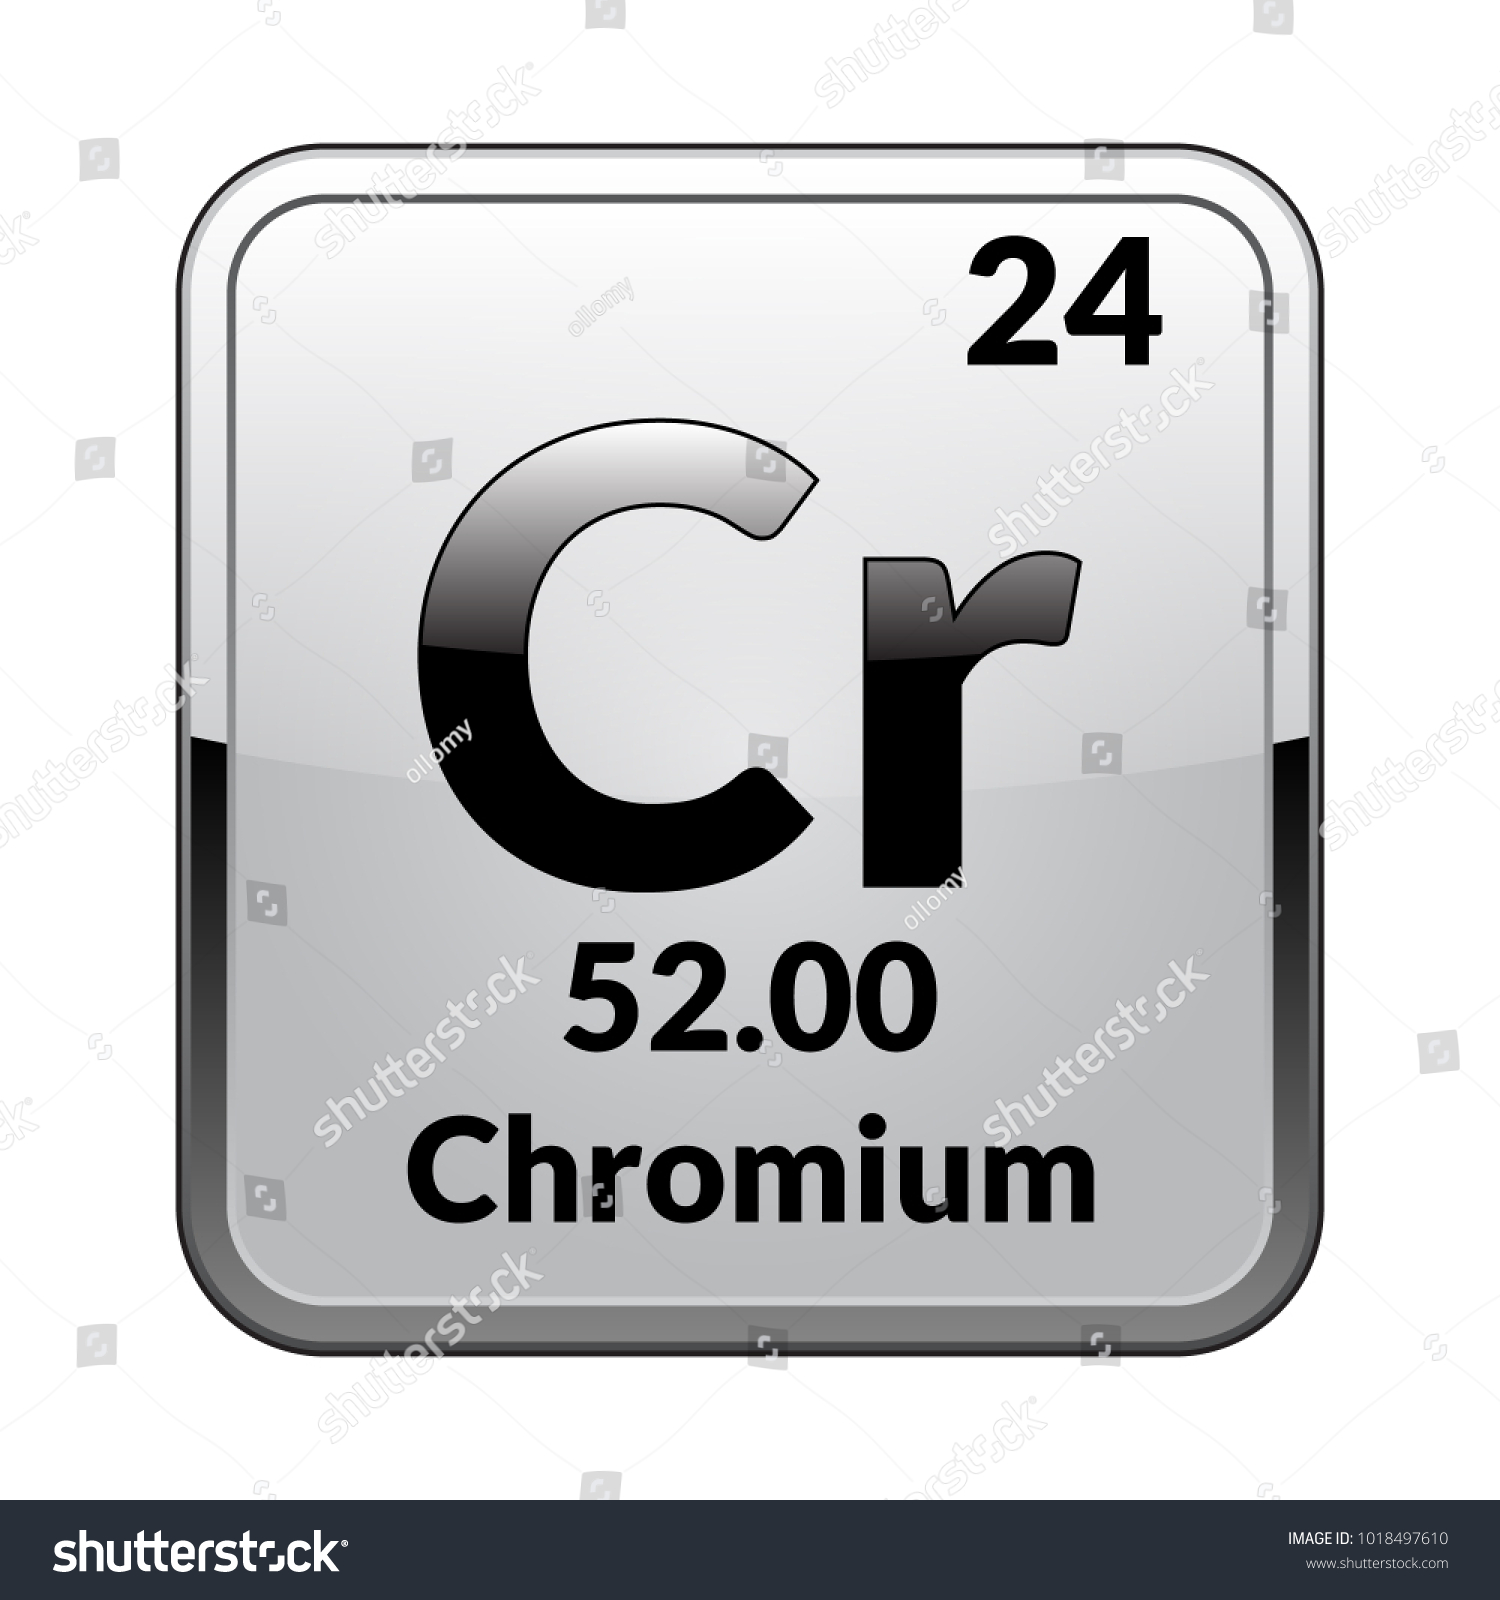 Silver symbol on periodic table gallery symbol and sign ideas chromium symbolchemical element periodic table on stock vector chromium symbolemical element of the periodic table on buycottarizona